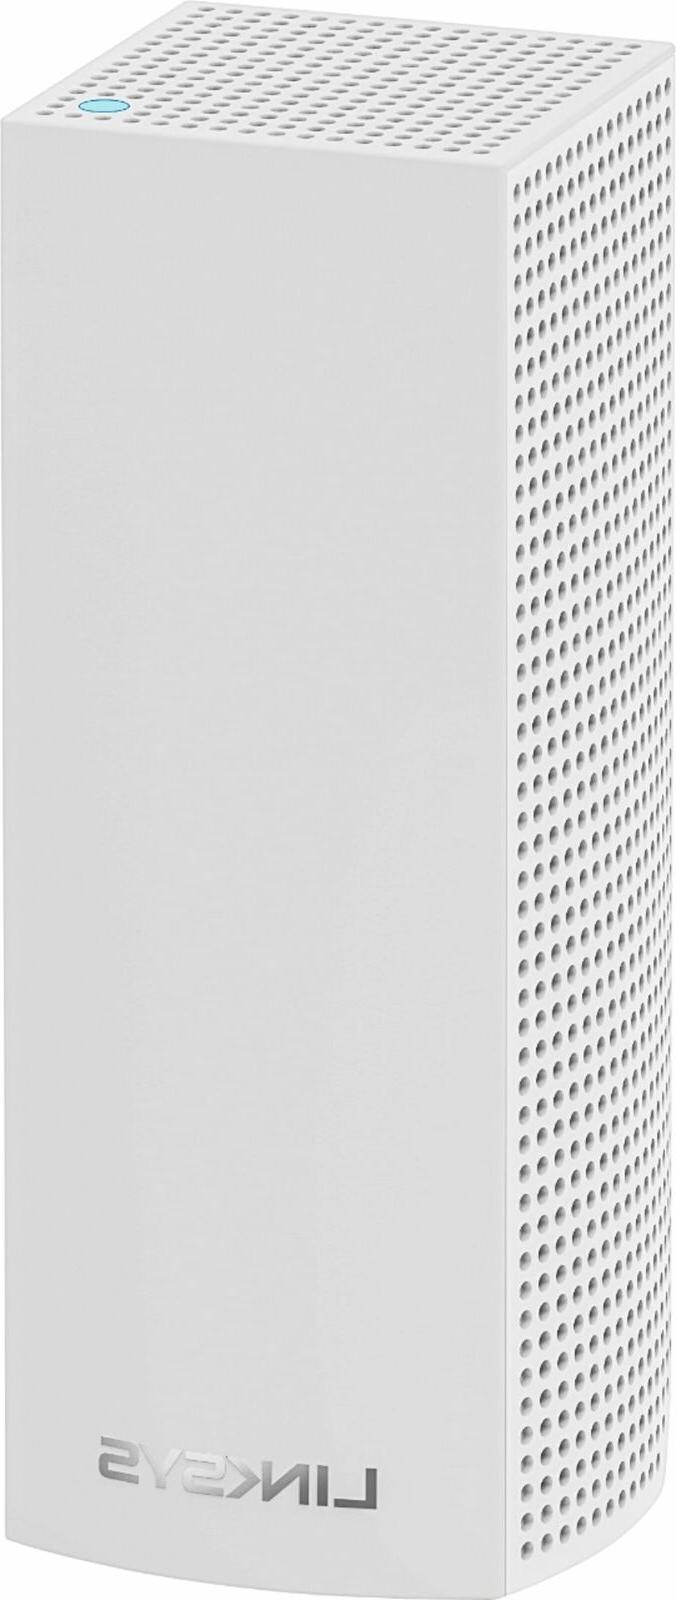 Linksys Whole Home Mesh Router System Dual-Band Tri-Band